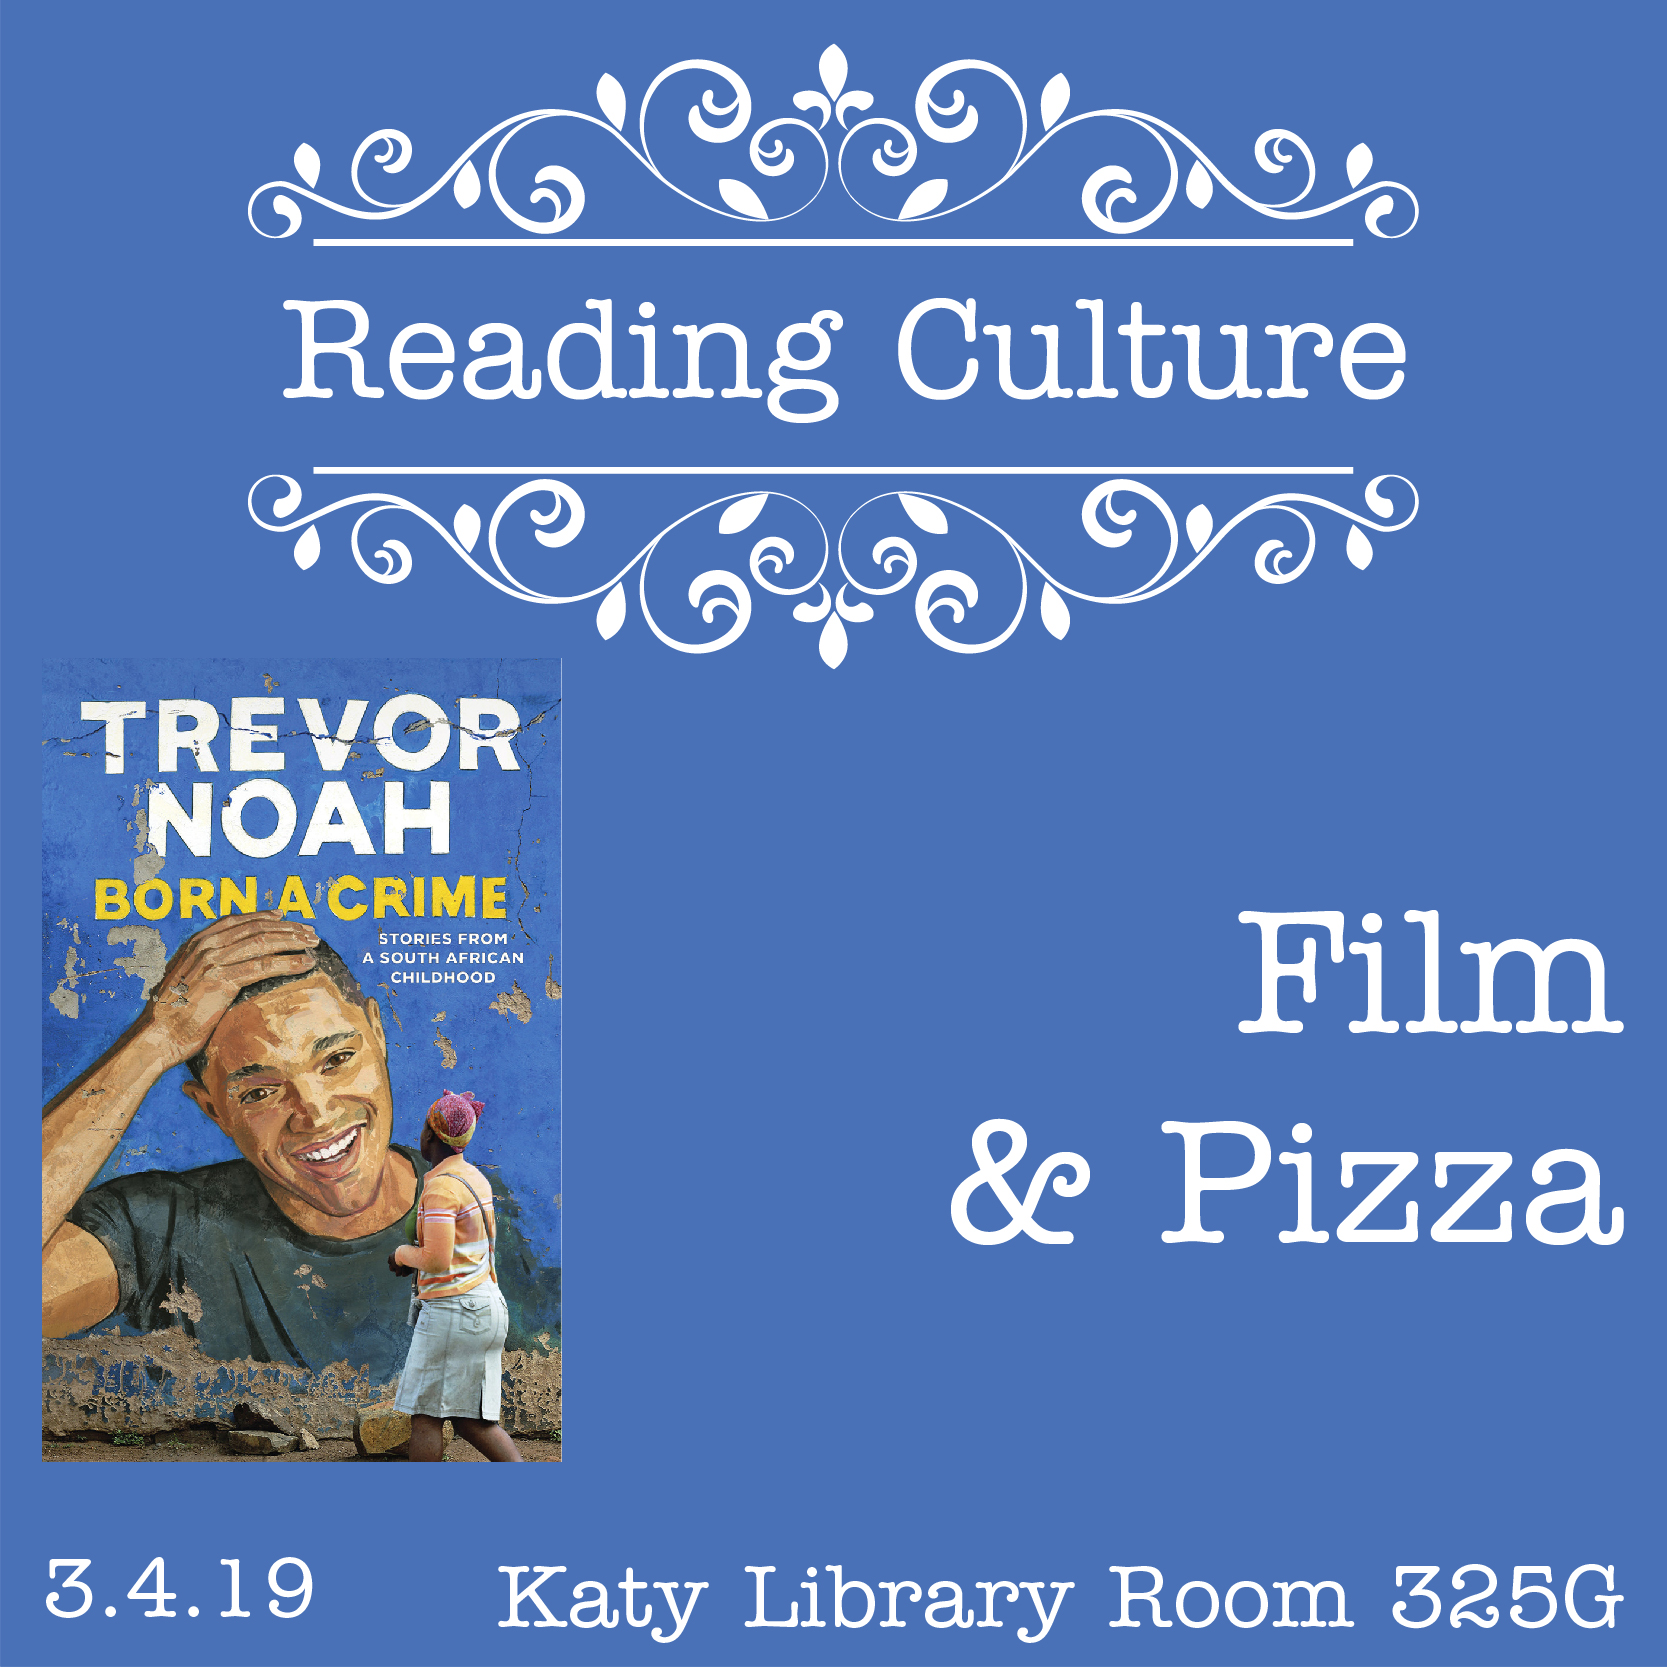 [KT] Reading Culture: Film & Pizza with Professor Gallego